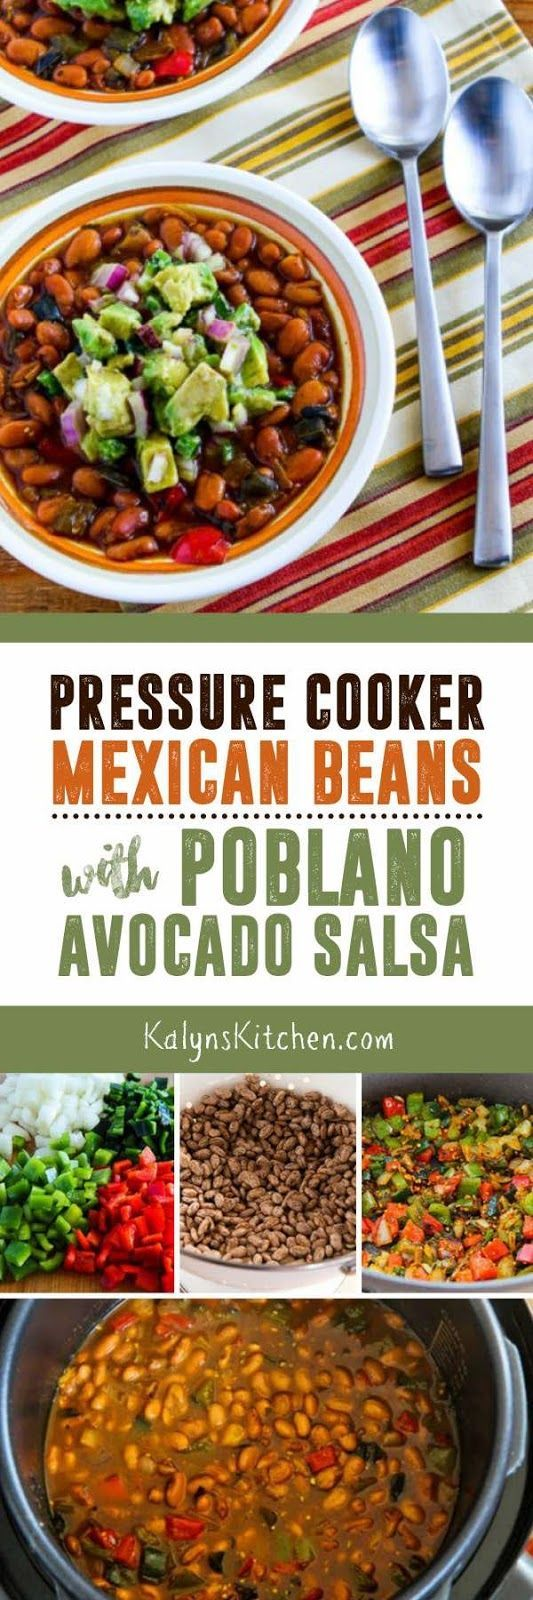 Use an electric pressure cooker, the Instant Pot, or a stovetop pressure cooker to make these absolutely amazing Pressure Cooker Mexican Beans with Avocado-Poblano Salsa; pressure cooker beans are not always that photogenic, but these beans are delicious. And this recipe is low-glycemic, gluten-free, dairy-free, vegan, and South Beach Diet friendly. [found on KalynsKitchen.com]